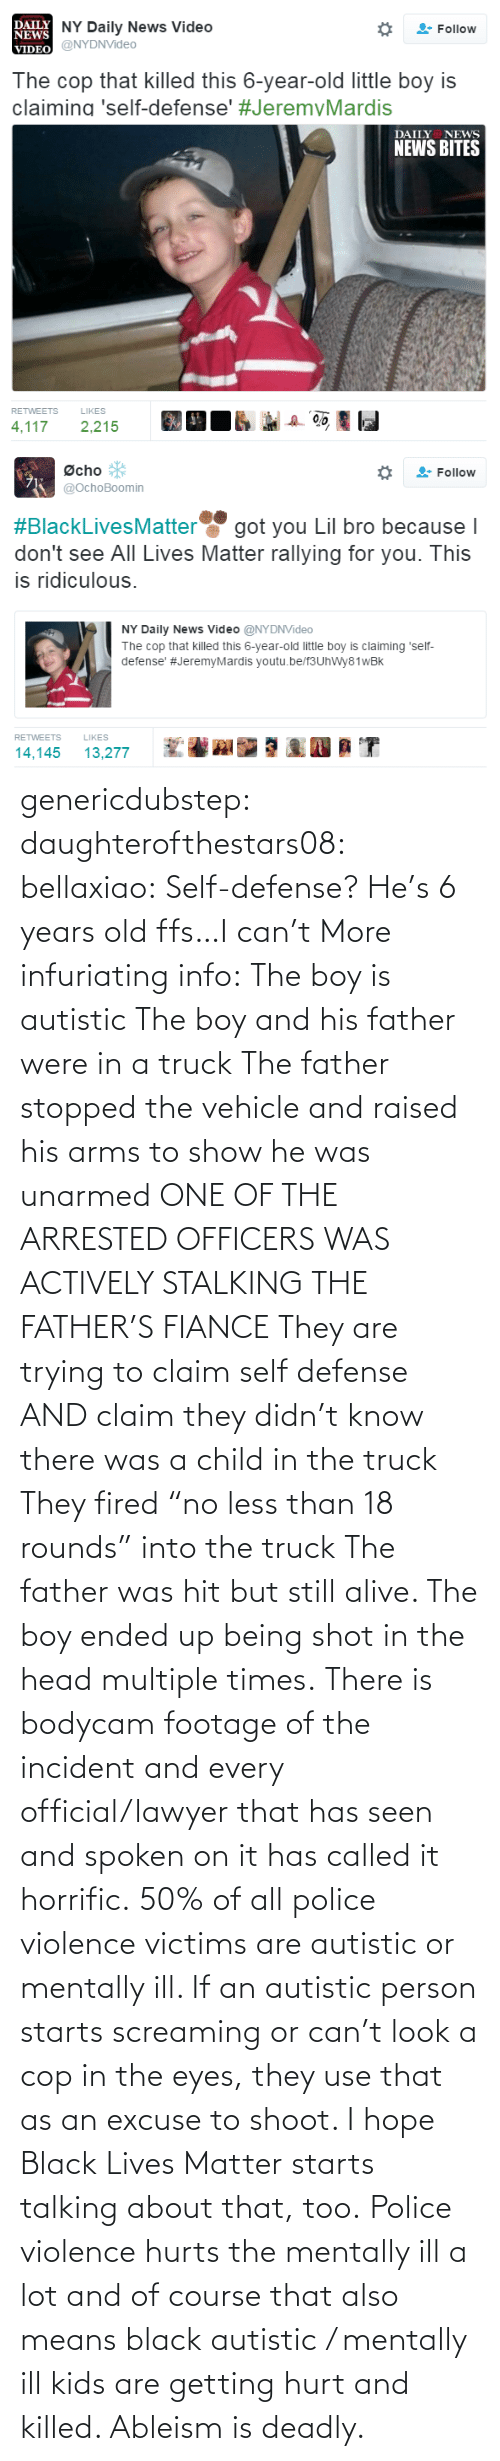 "shot: genericdubstep: daughterofthestars08:  bellaxiao:  Self-defense? He's 6 years old ffs…I can't  More infuriating info: The boy is autistic The boy and his father were in a truck The father stopped the vehicle and raised his arms to show he was unarmed ONE OF THE ARRESTED OFFICERS WAS ACTIVELY STALKING THE FATHER'S FIANCE They are trying to claim self defense AND claim they didn't know there was a child in the truck They fired ""no less than 18 rounds"" into the truck The father was hit but still alive. The boy ended up being shot in the head multiple times. There is bodycam footage of the incident and every official/lawyer that has seen and spoken on it has called it horrific.  50% of all police violence victims are autistic or mentally ill. If an autistic person starts screaming or can't look a cop in the eyes, they use that as an excuse to shoot. I hope Black Lives Matter starts talking about that, too. Police violence hurts the mentally ill a lot and of course that also means black autistic / mentally ill kids are getting hurt and killed. Ableism is deadly."